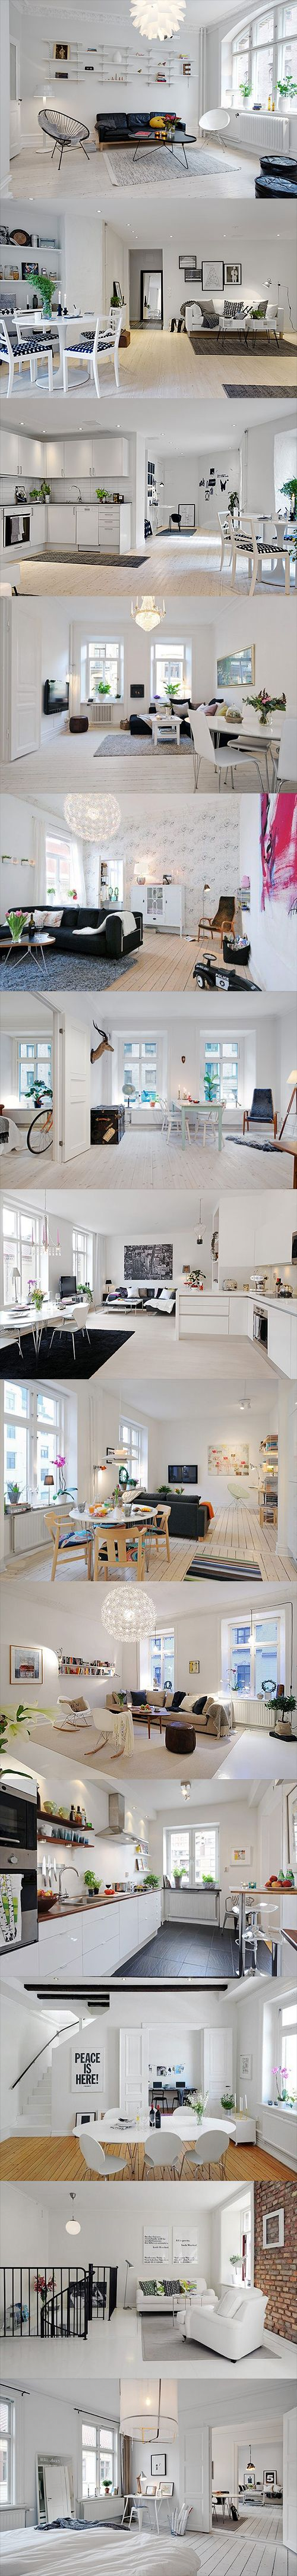 Beautiful & Stylish Scandinavian interior design inspiration 01: